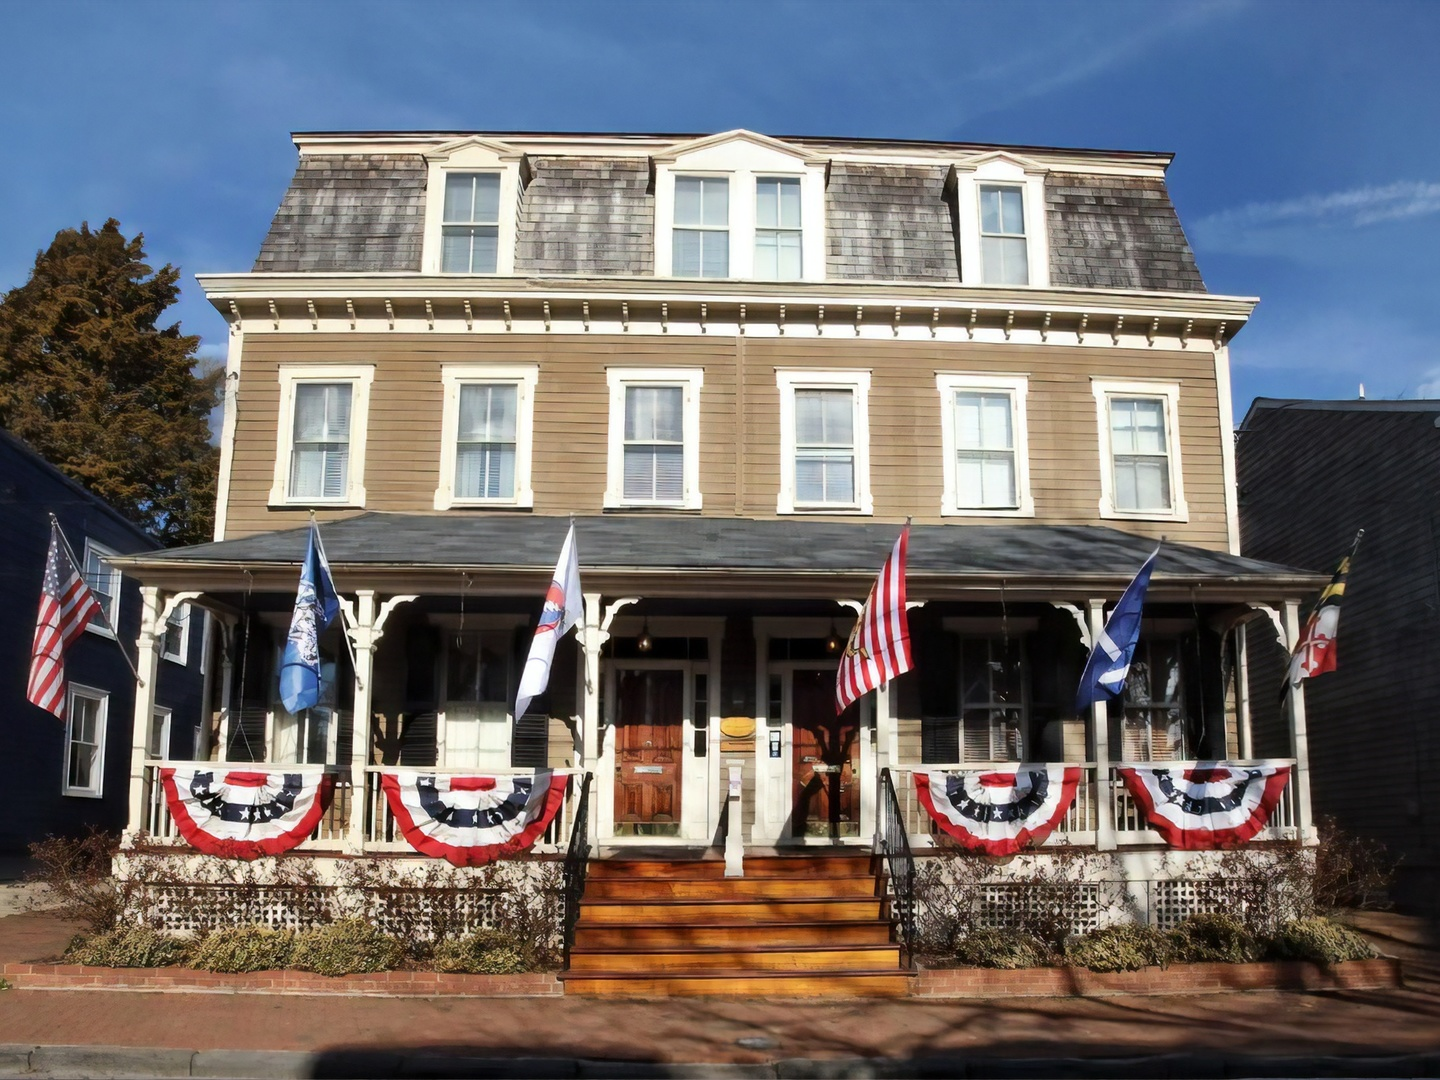 A group of people in front of a building at Flag House Inn.